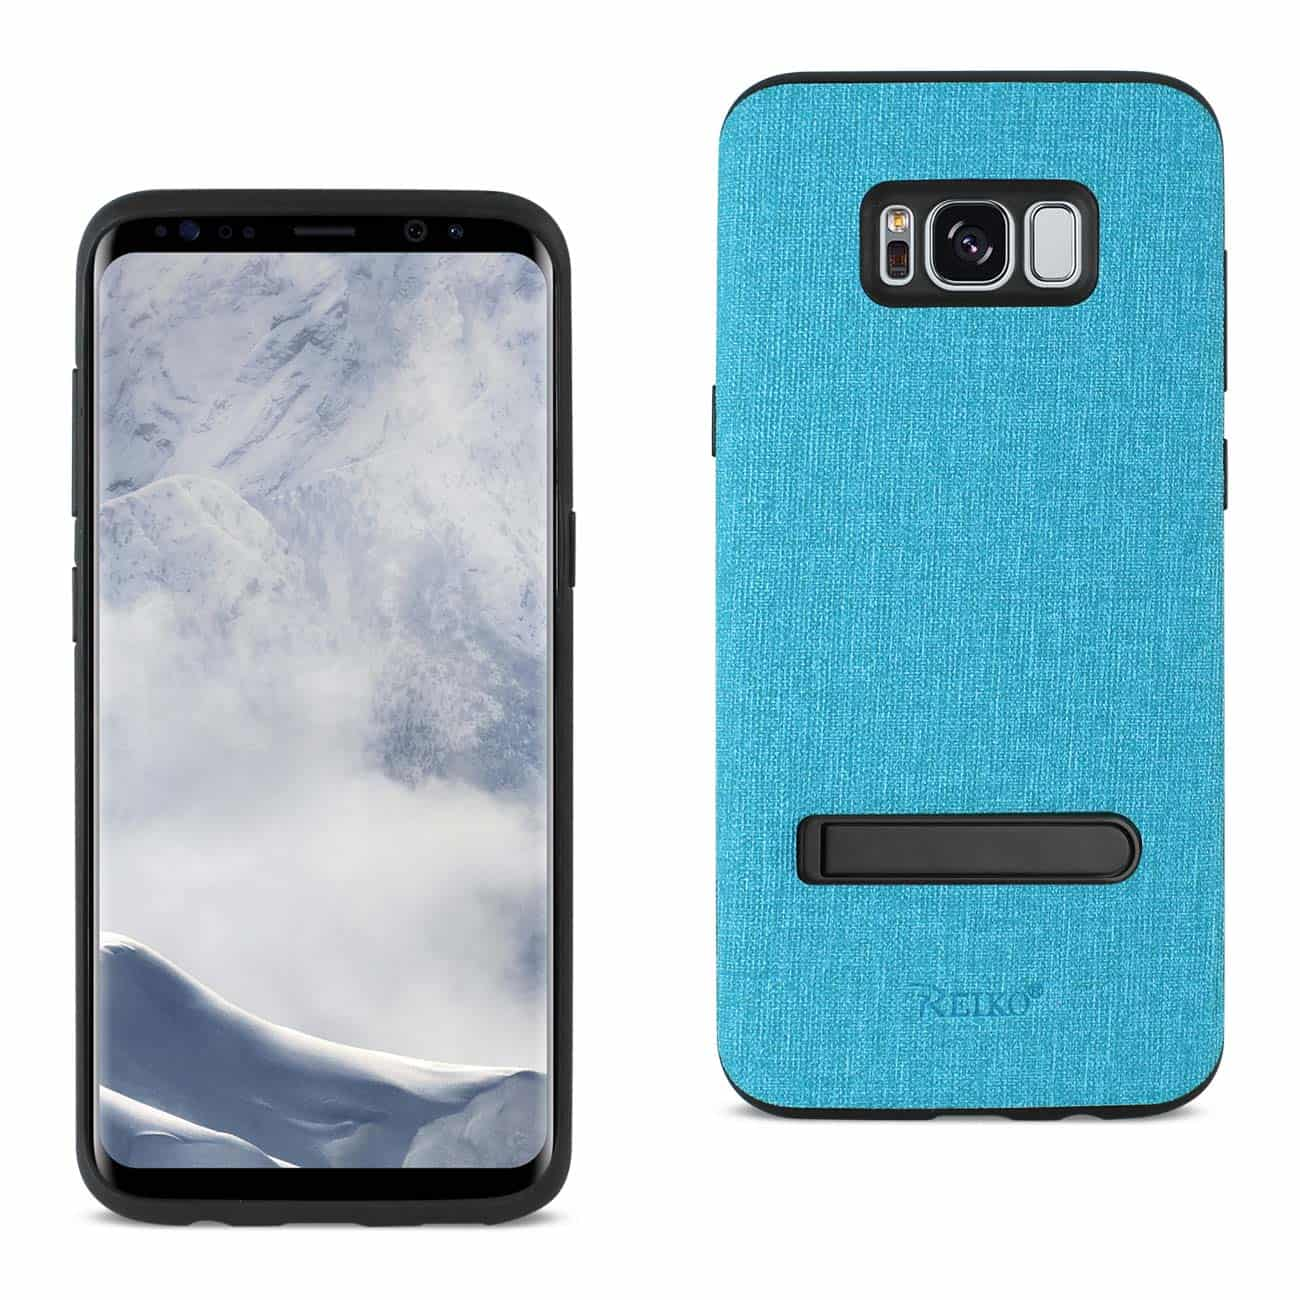 SAMSUNG GALAXY S8 EDGE/ S8 PLUS DENIM TEXTURE TPU PROTECTOR COVER IN BLUE